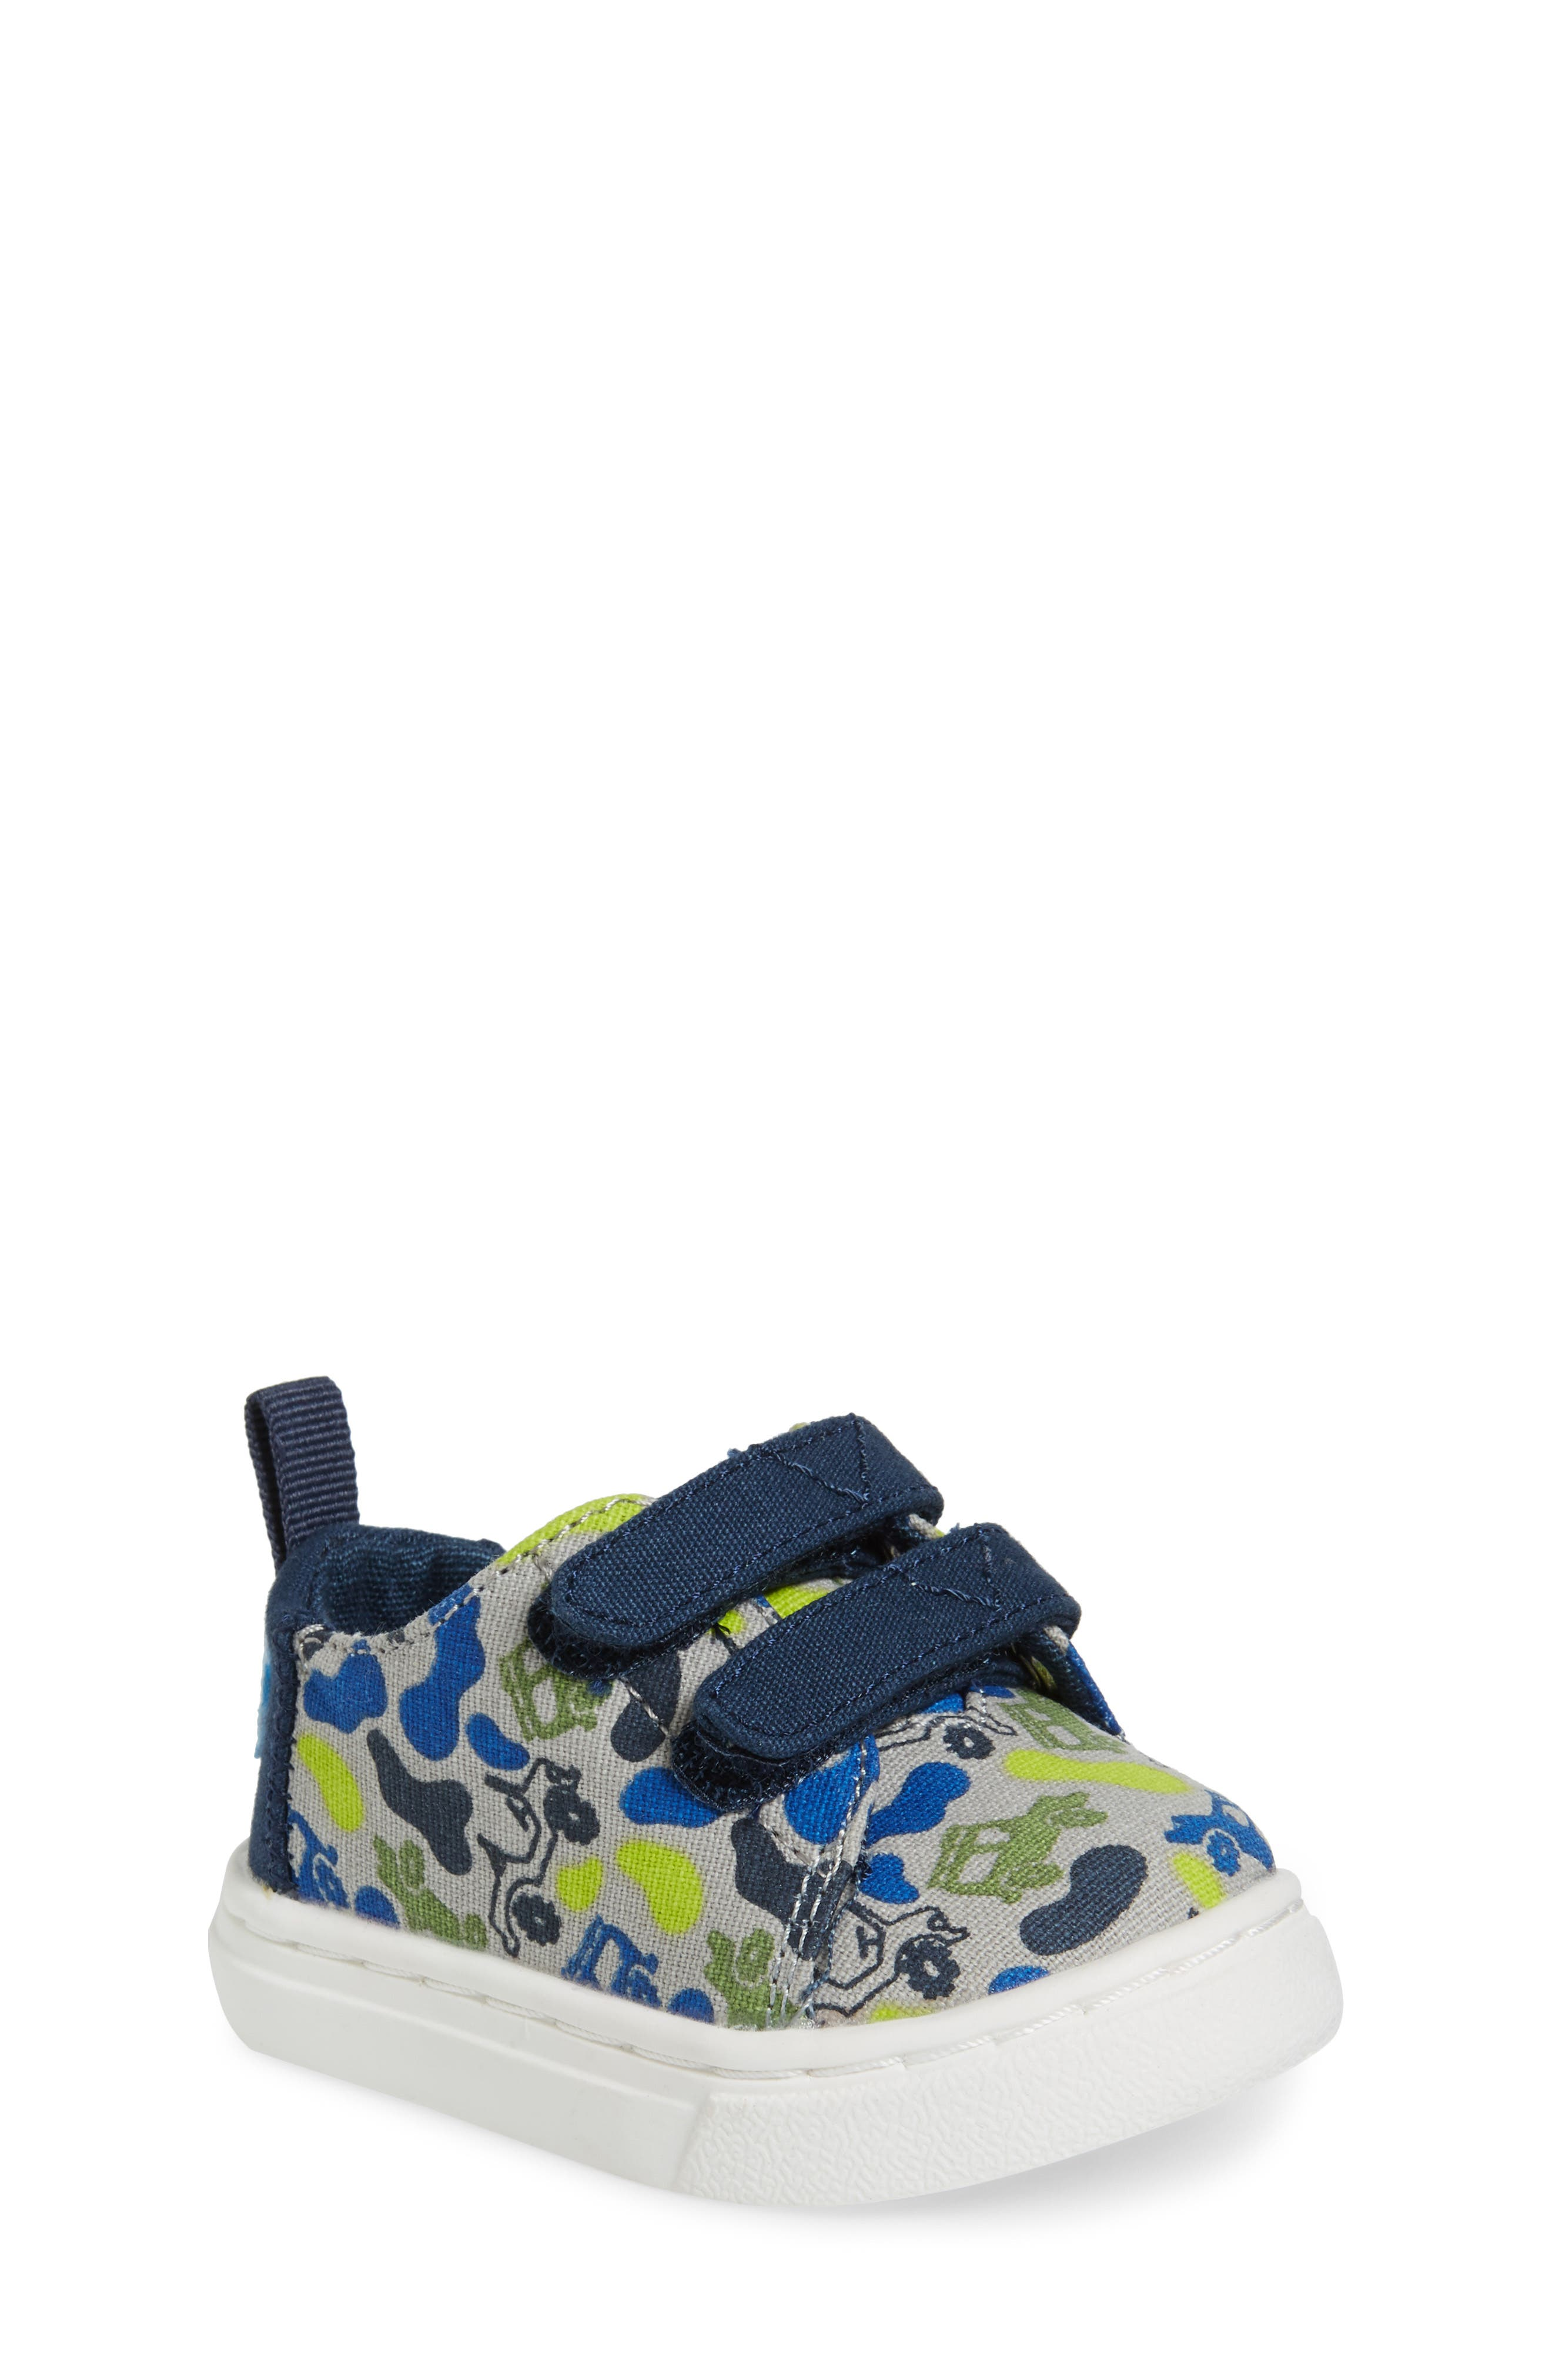 TOMS Lenny Sneaker (Baby, Walker, Toddler, Little Kid & Big Kid)